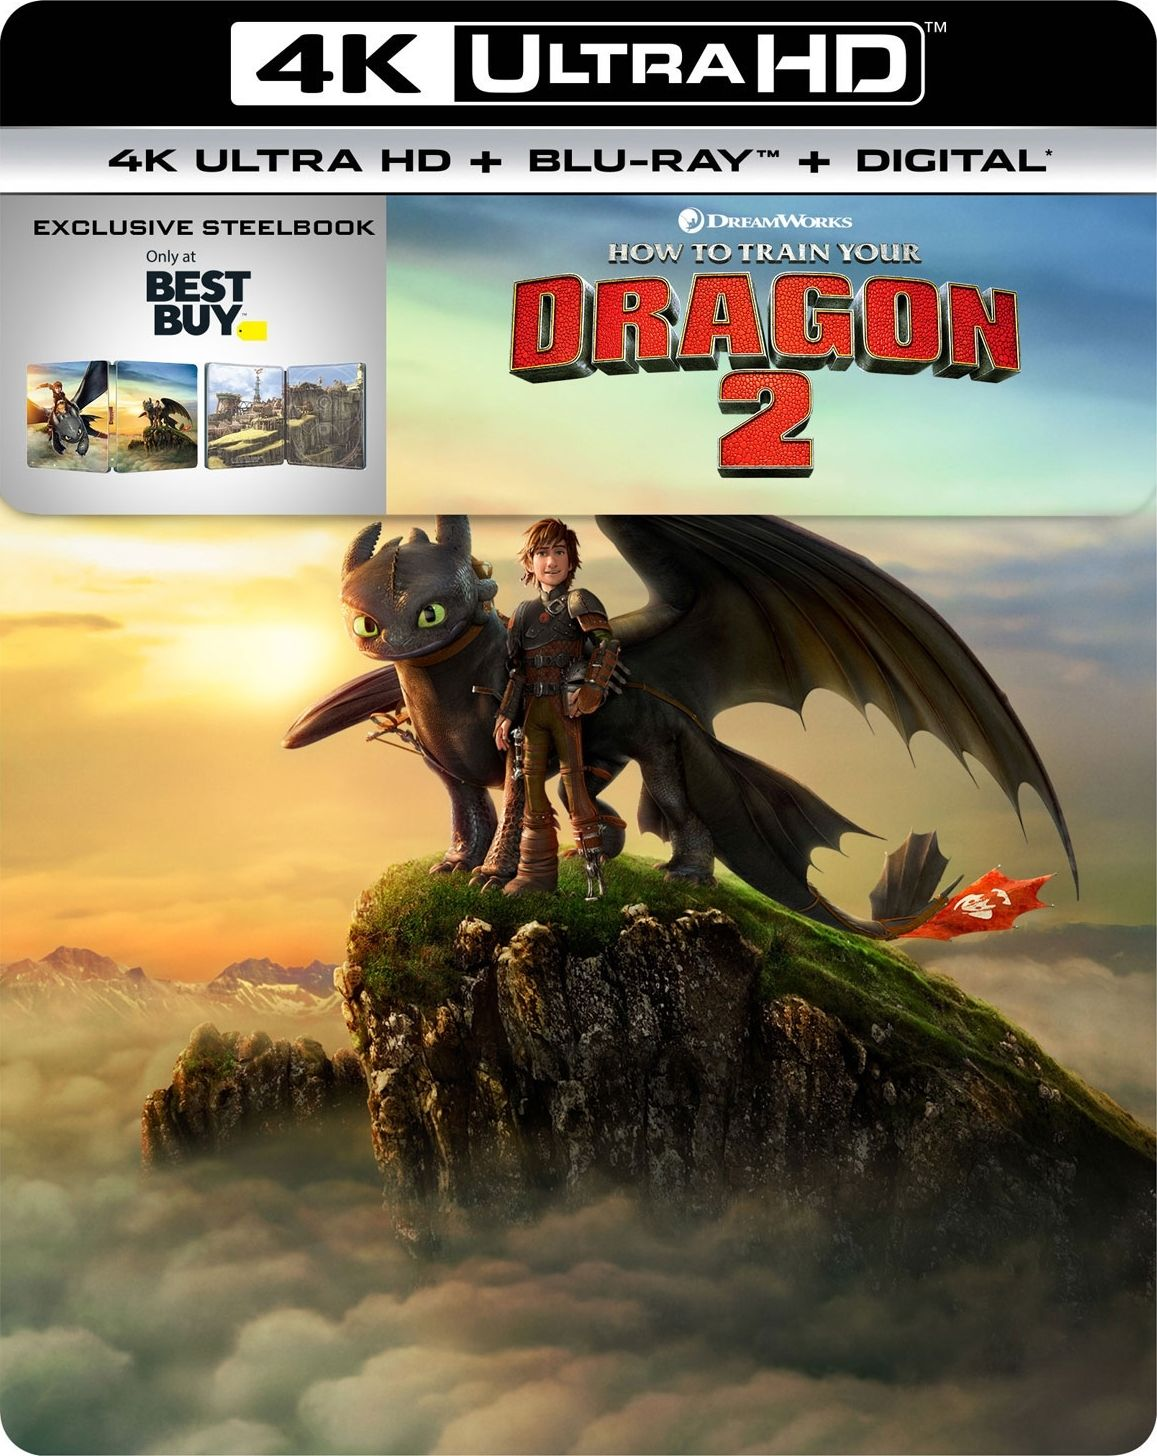 How To Train Your Dragon 2 4k Blu Ray Best Buy